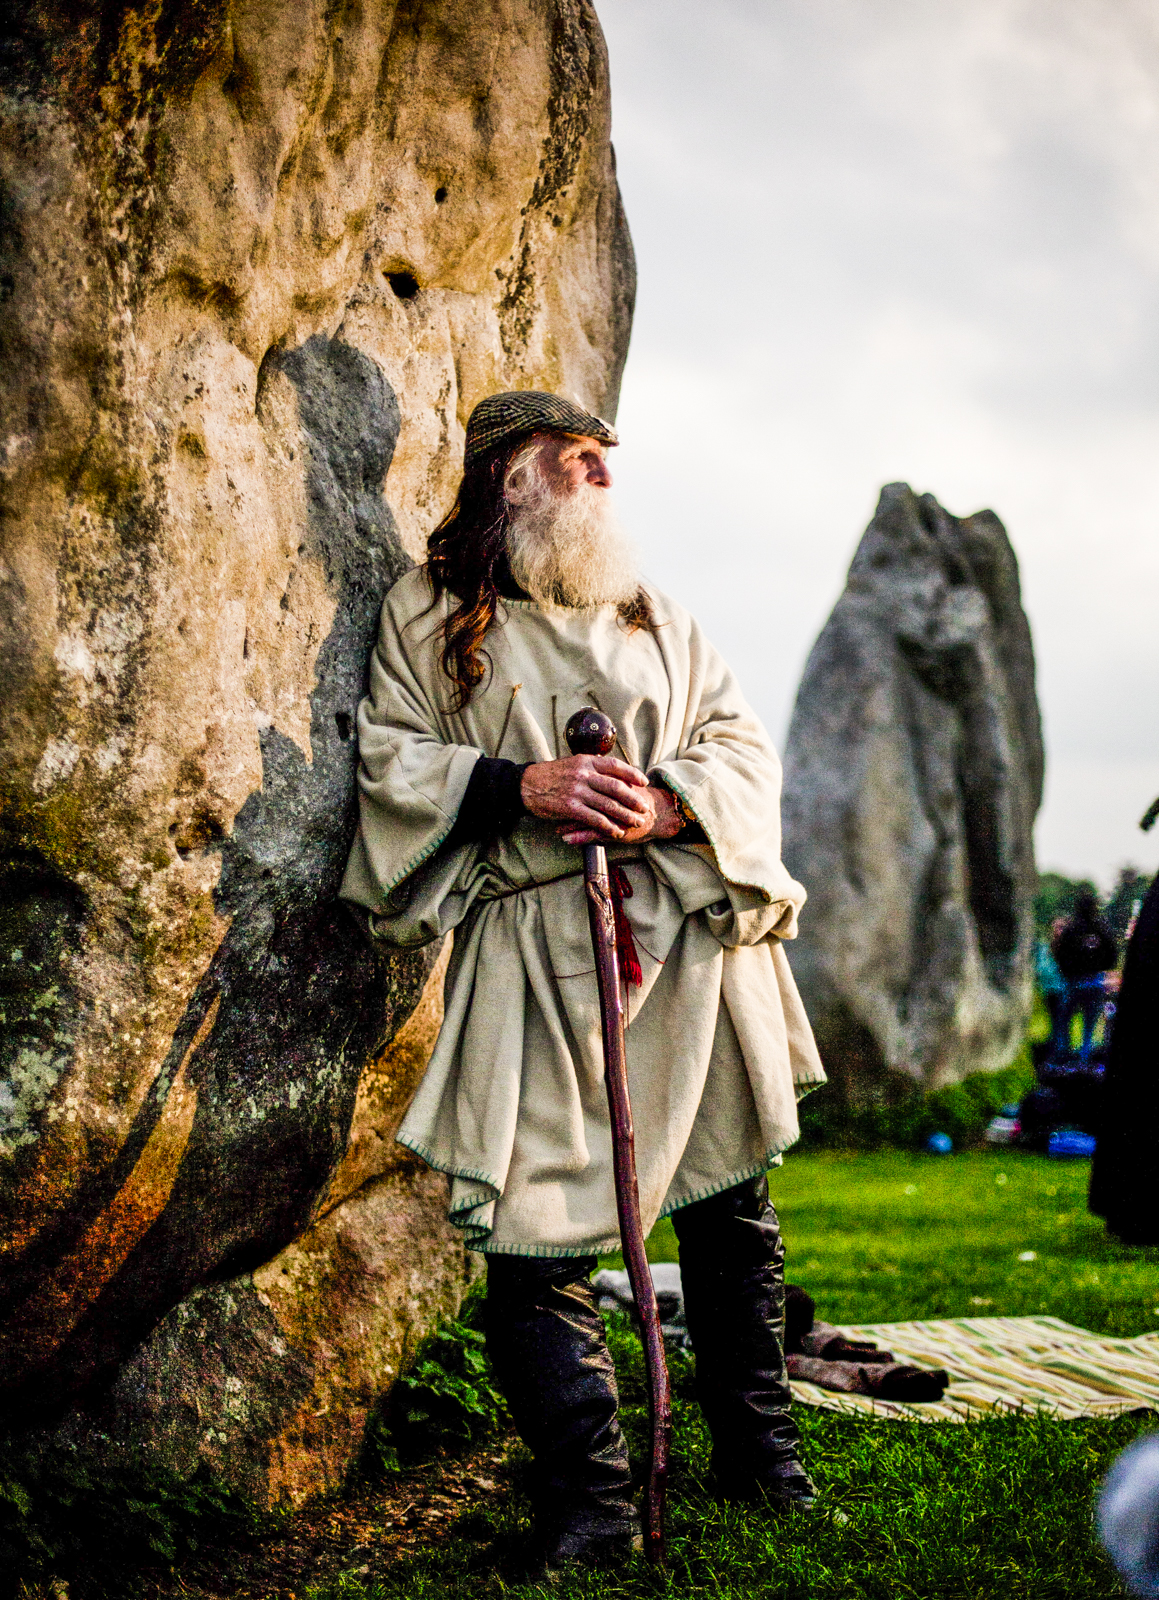 Keeper of the Stones and Archdruid of Avebury Terry Dobney at the Avebury Stone Circle on the evening before the Summer Solstice